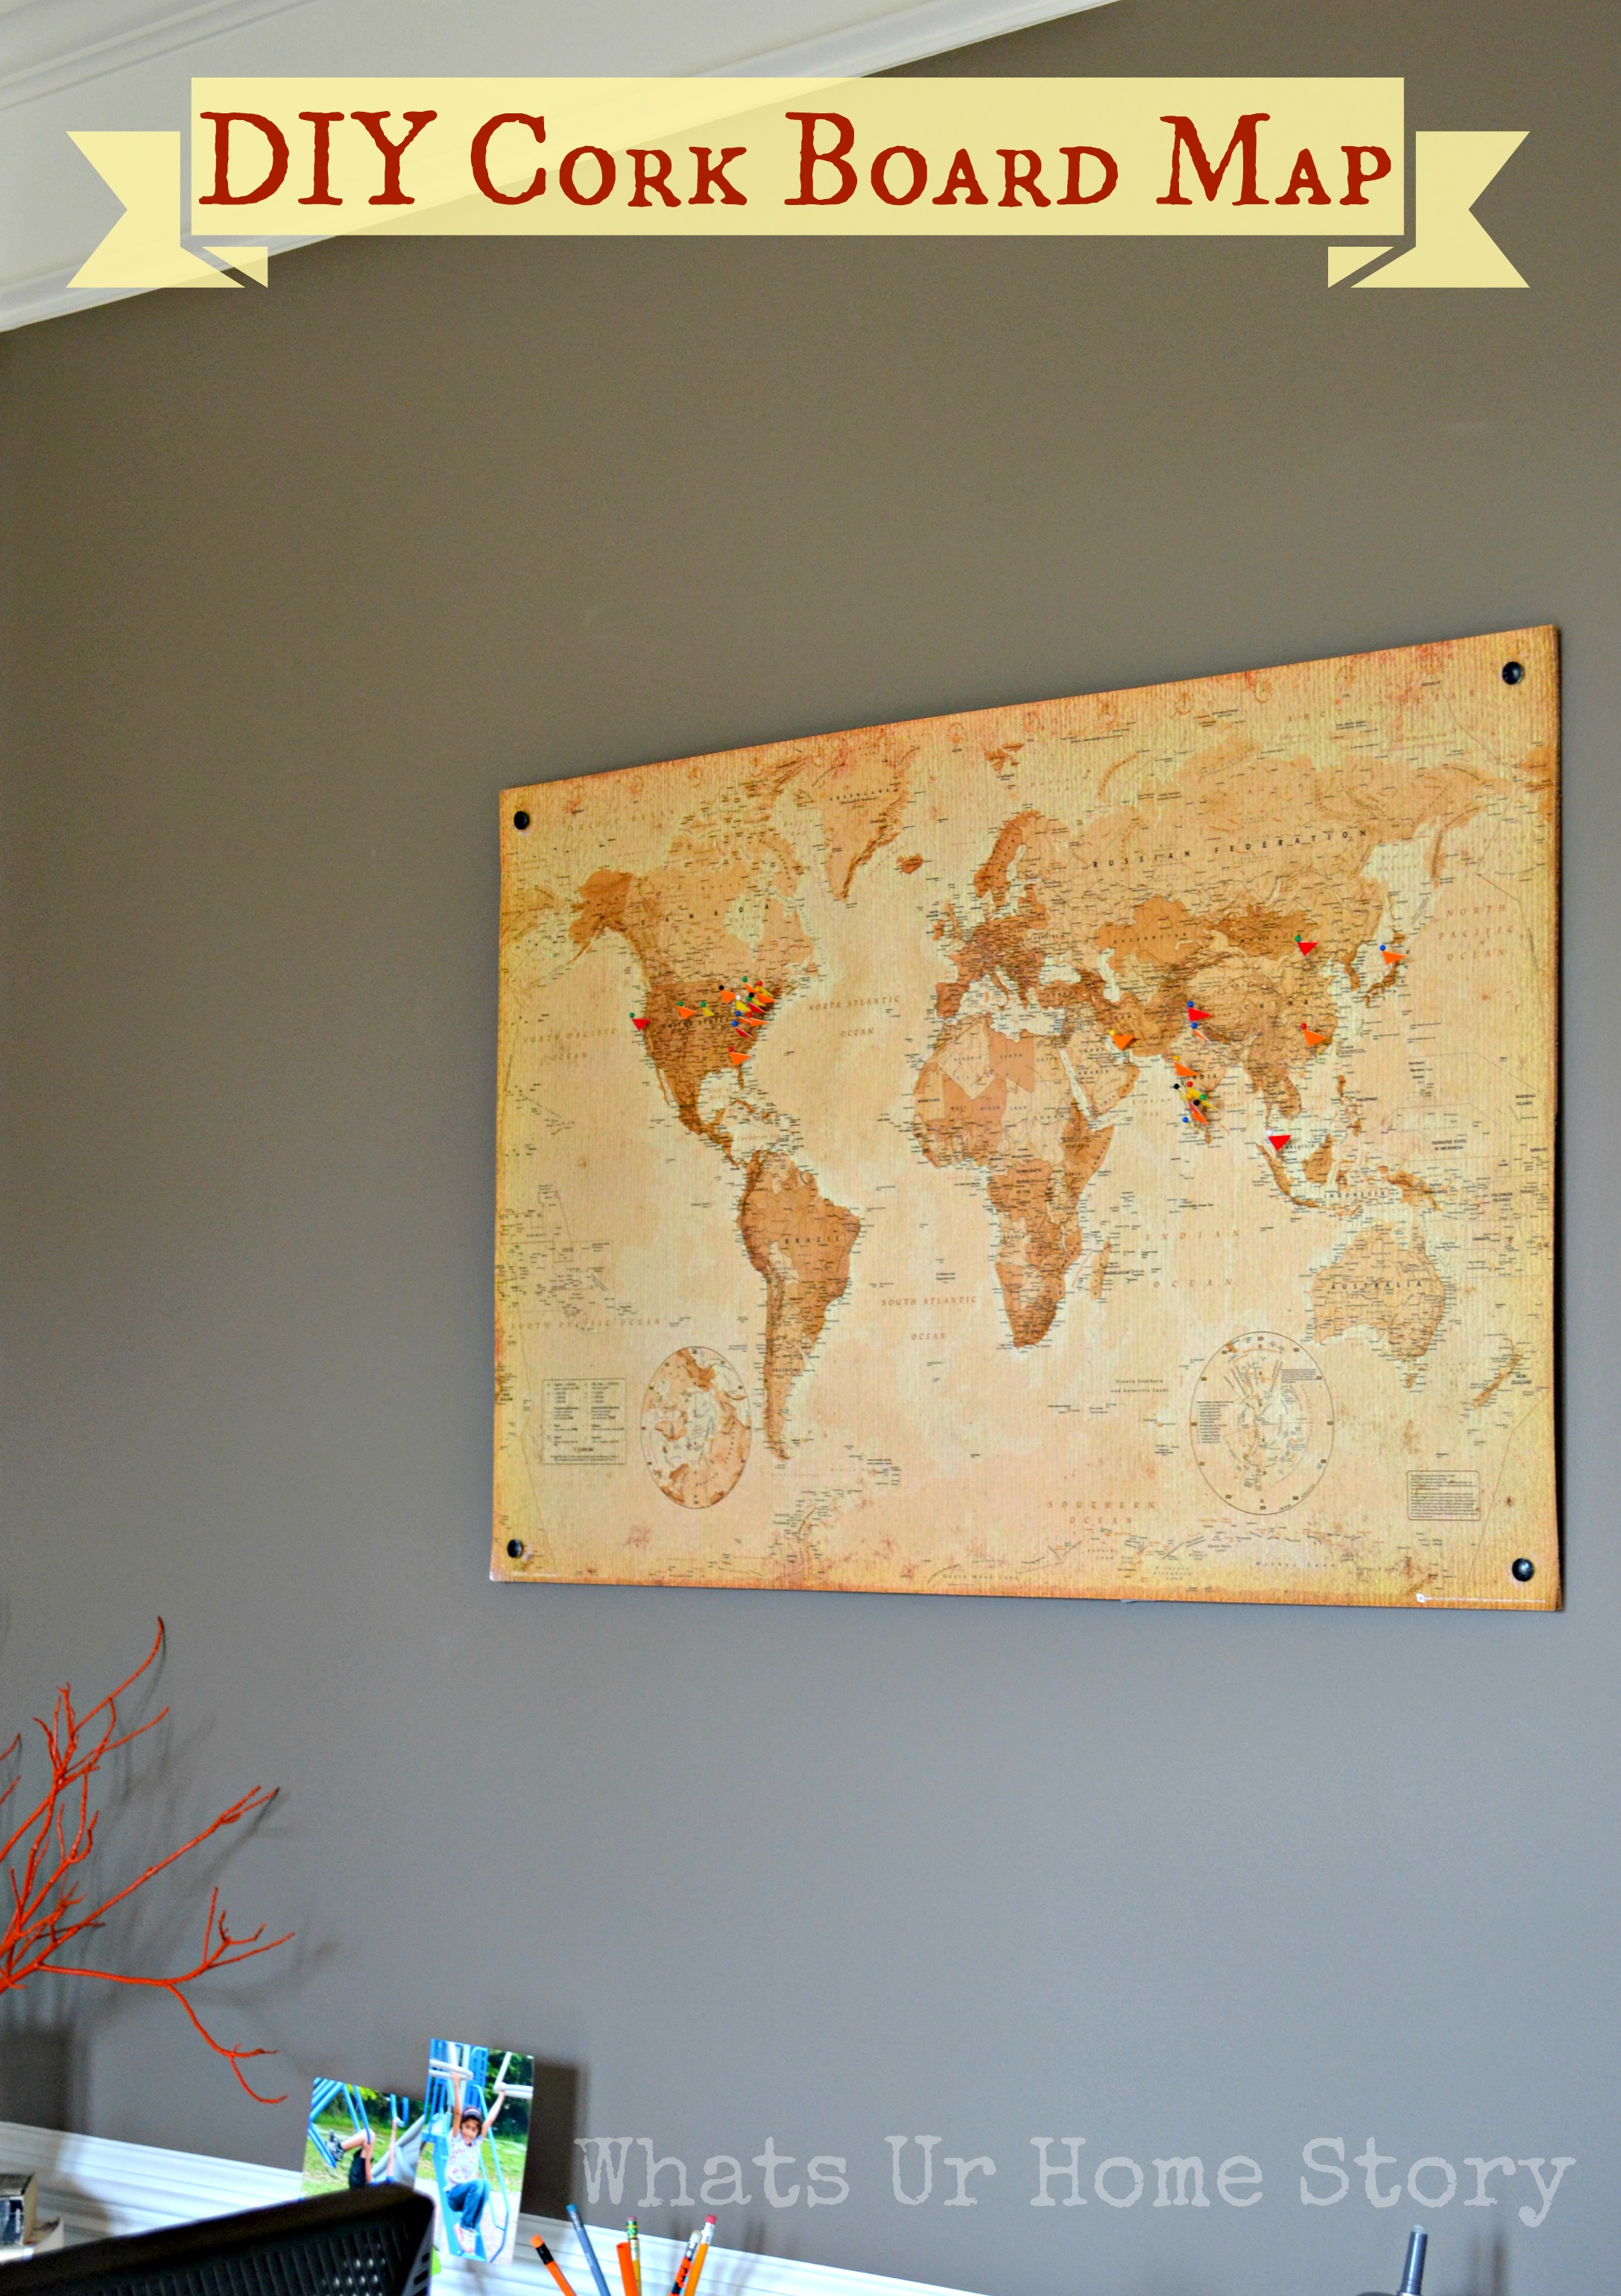 Diy cork board map whats ur home story diy cork board map gumiabroncs